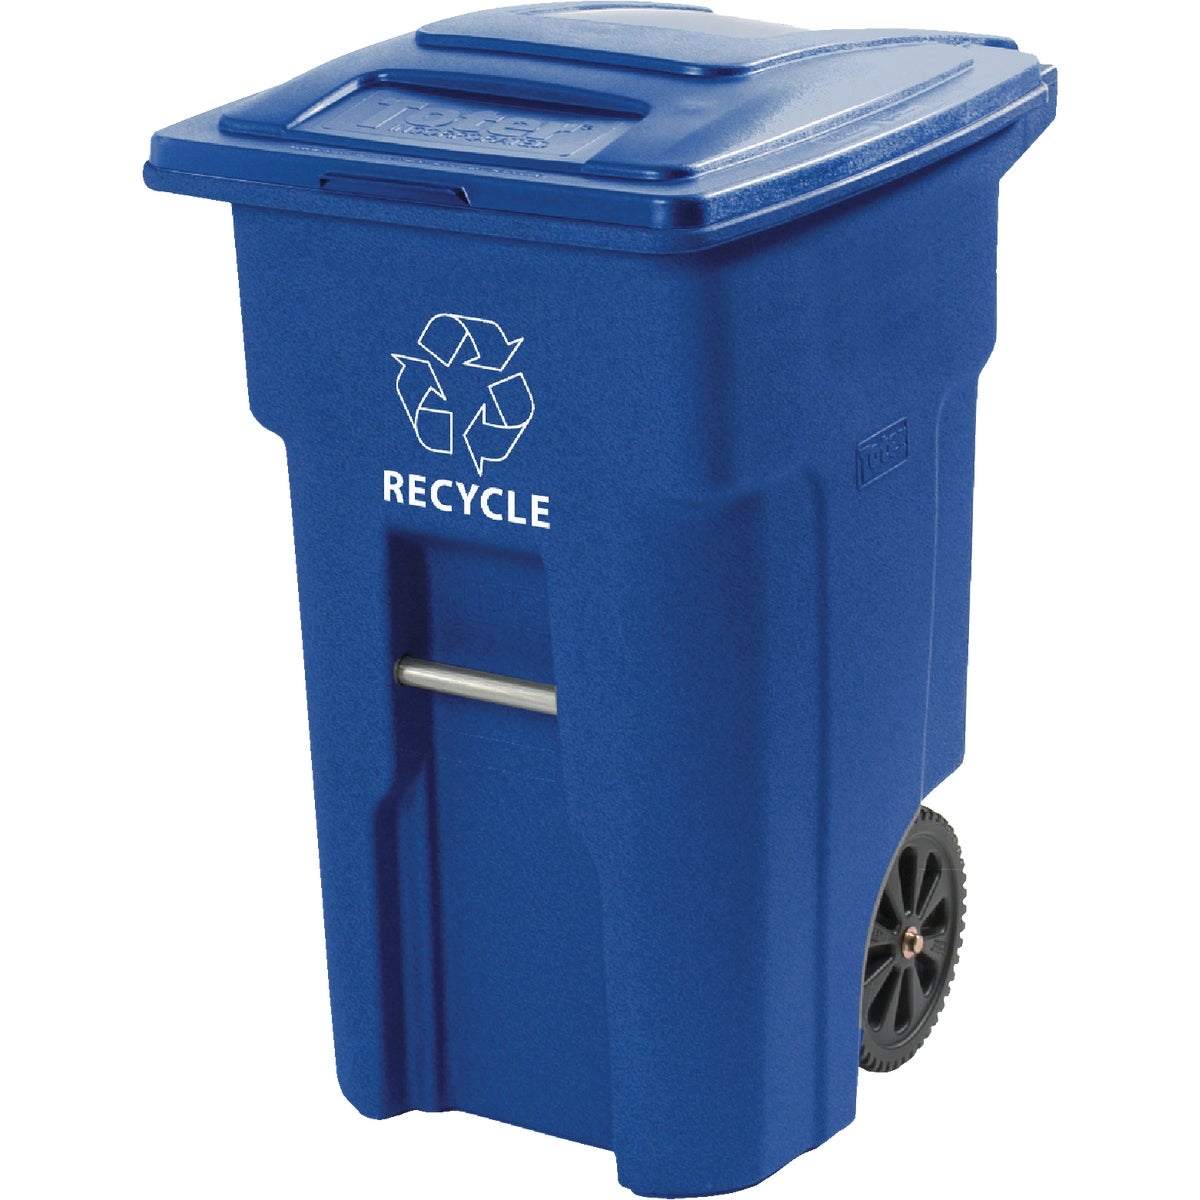 64GAL 2WHL RECYCLE CART - 025564-D5BLU by Toter